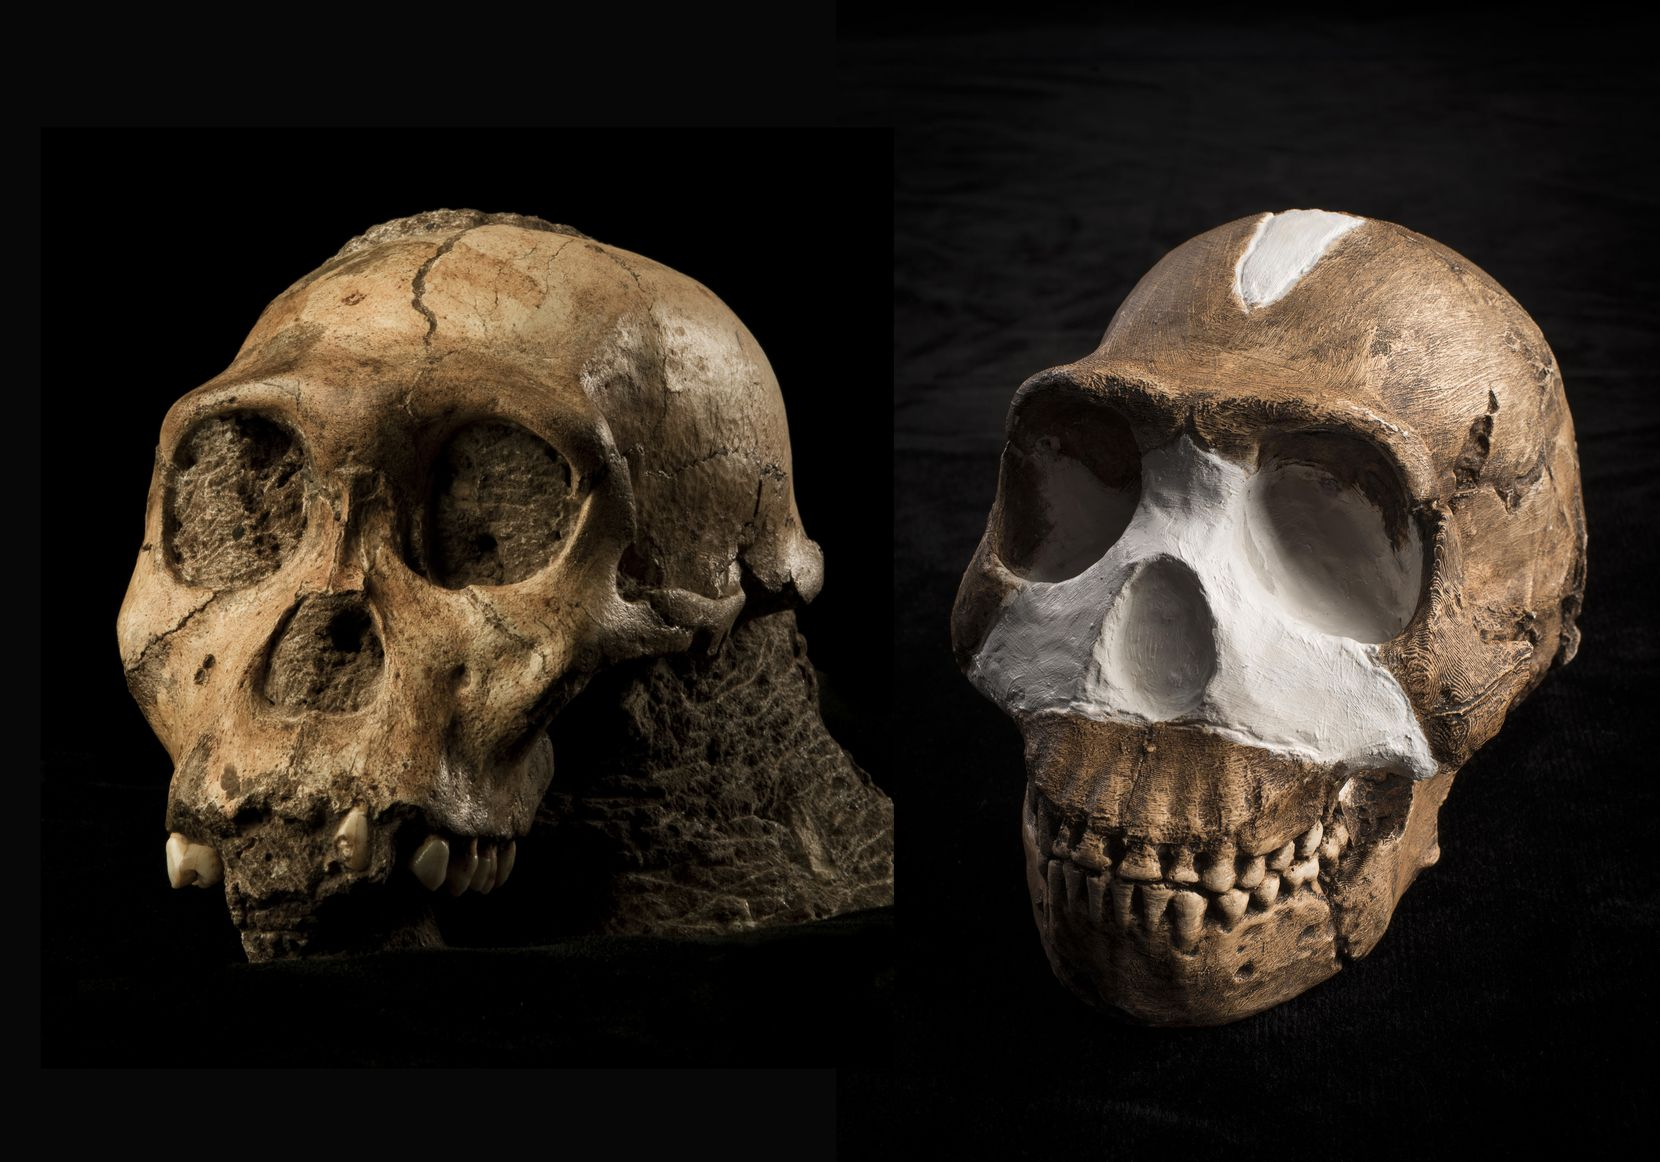 """The fossil skulls of Australopithecus sediba (left) and Homo naledi (right), early human relatives. The skulls are part of the Perot Museum of Nature and Science exhibit, """"Origins."""""""